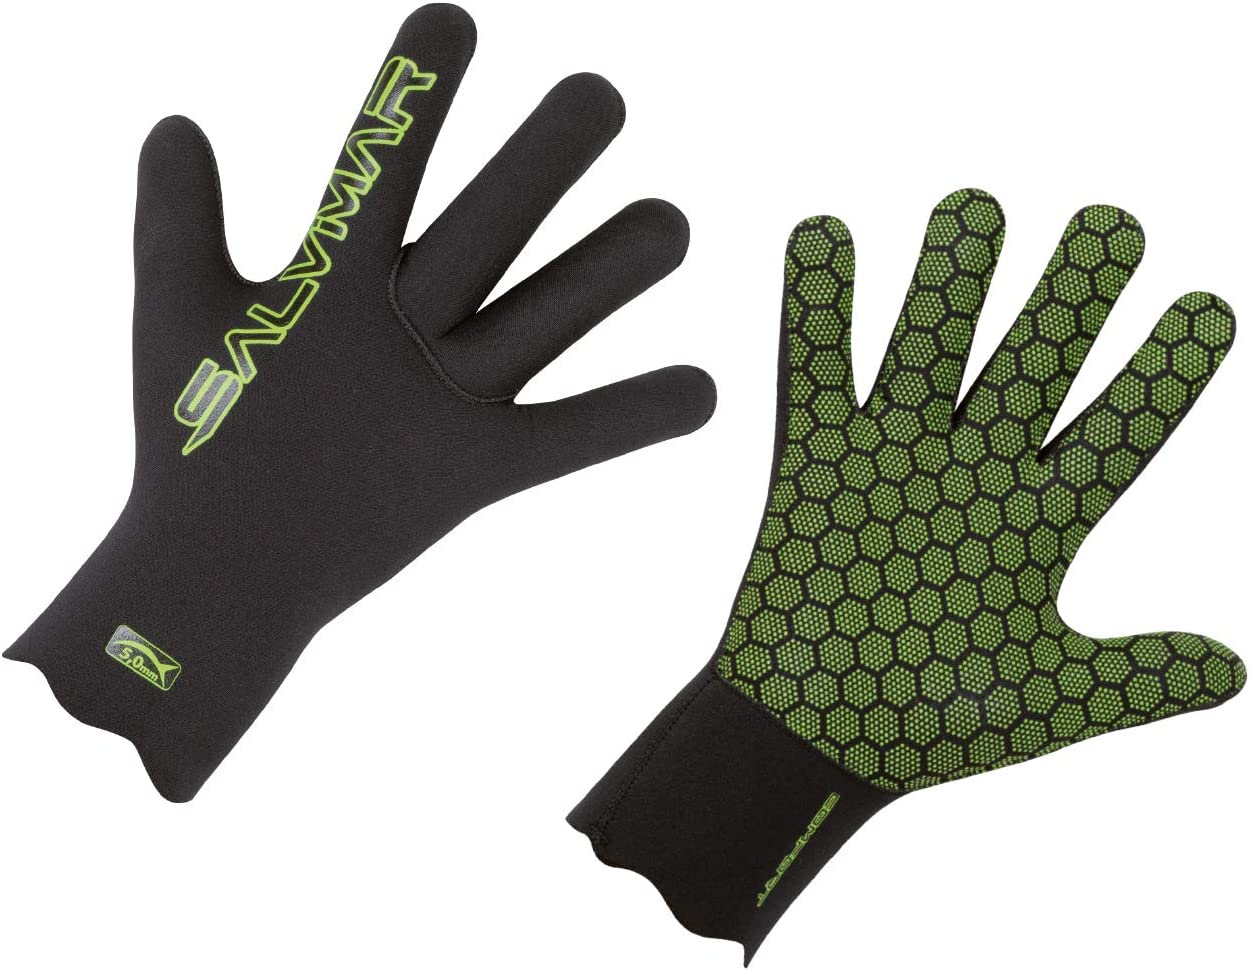 We OFFer at cheap prices SALVIMAR Comfort Gloves Max 83% OFF